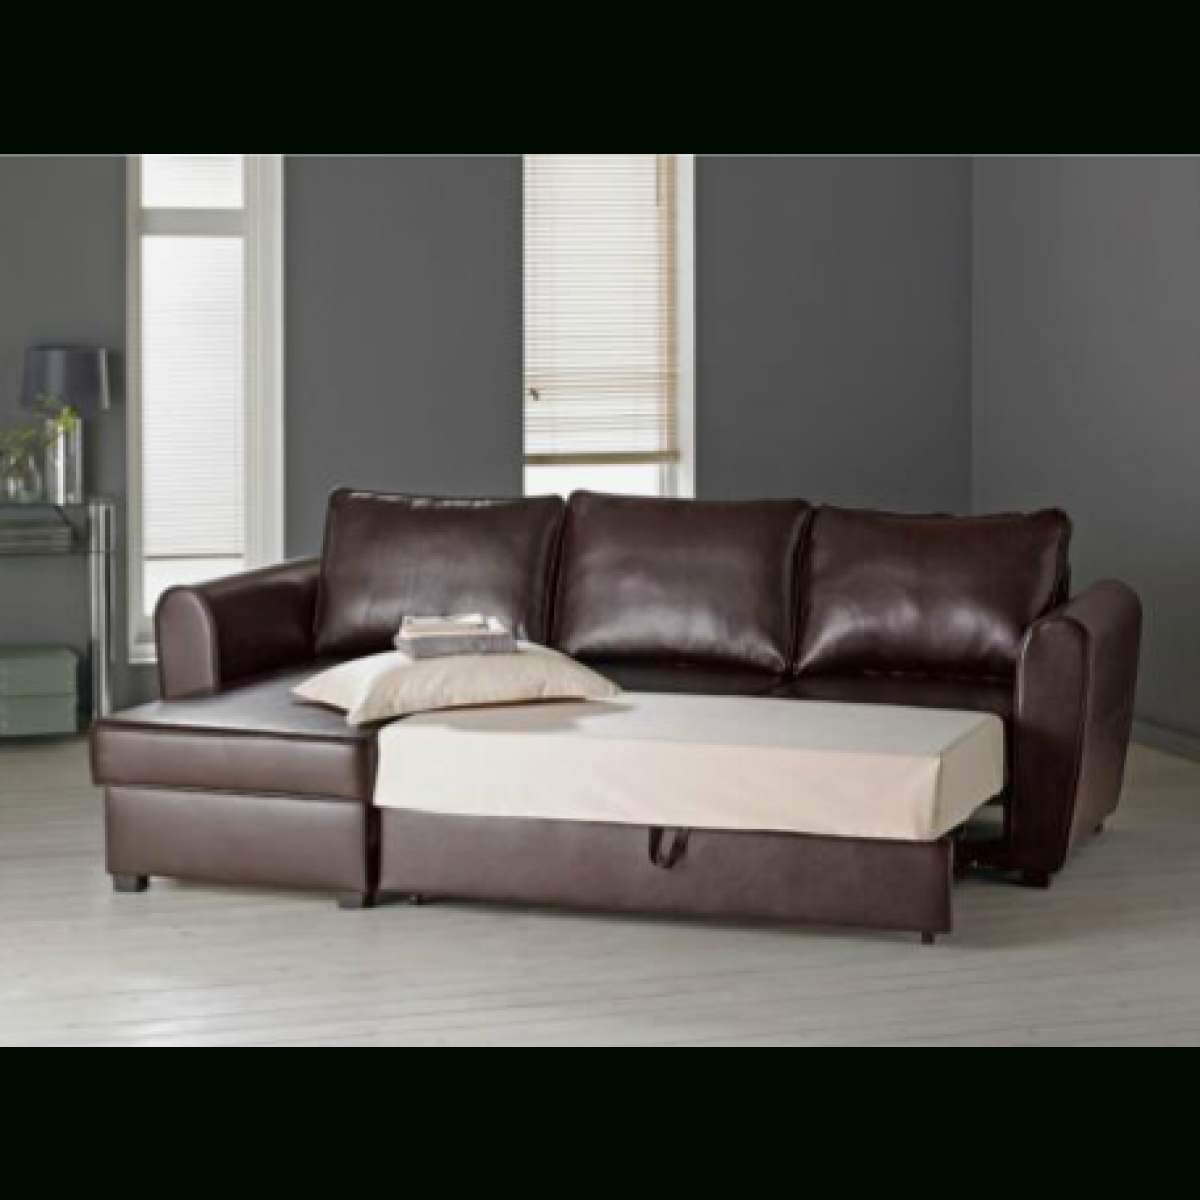 Storage Sofas Regarding Best And Newest Siena Leather Effect Corner Sofa Bed With Storage  Chocolate (View 18 of 20)